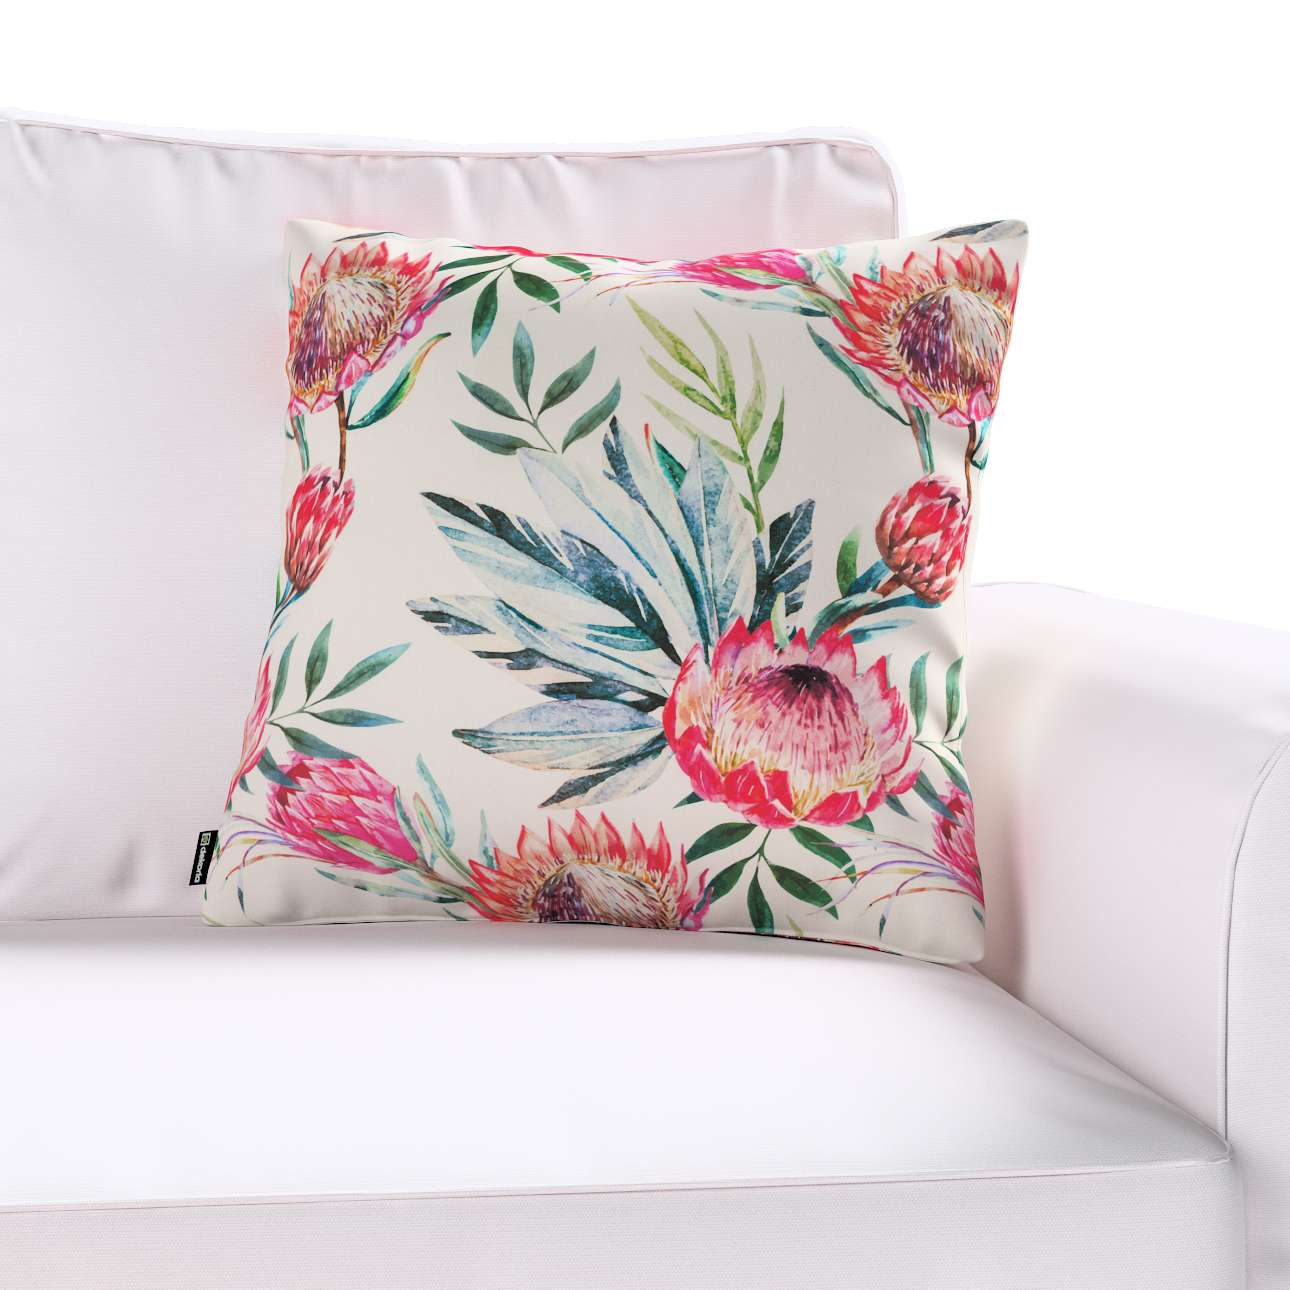 Kinga cushion cover 43 x 43 cm (17 x 17 inch) in collection New Art, fabric: 141-59